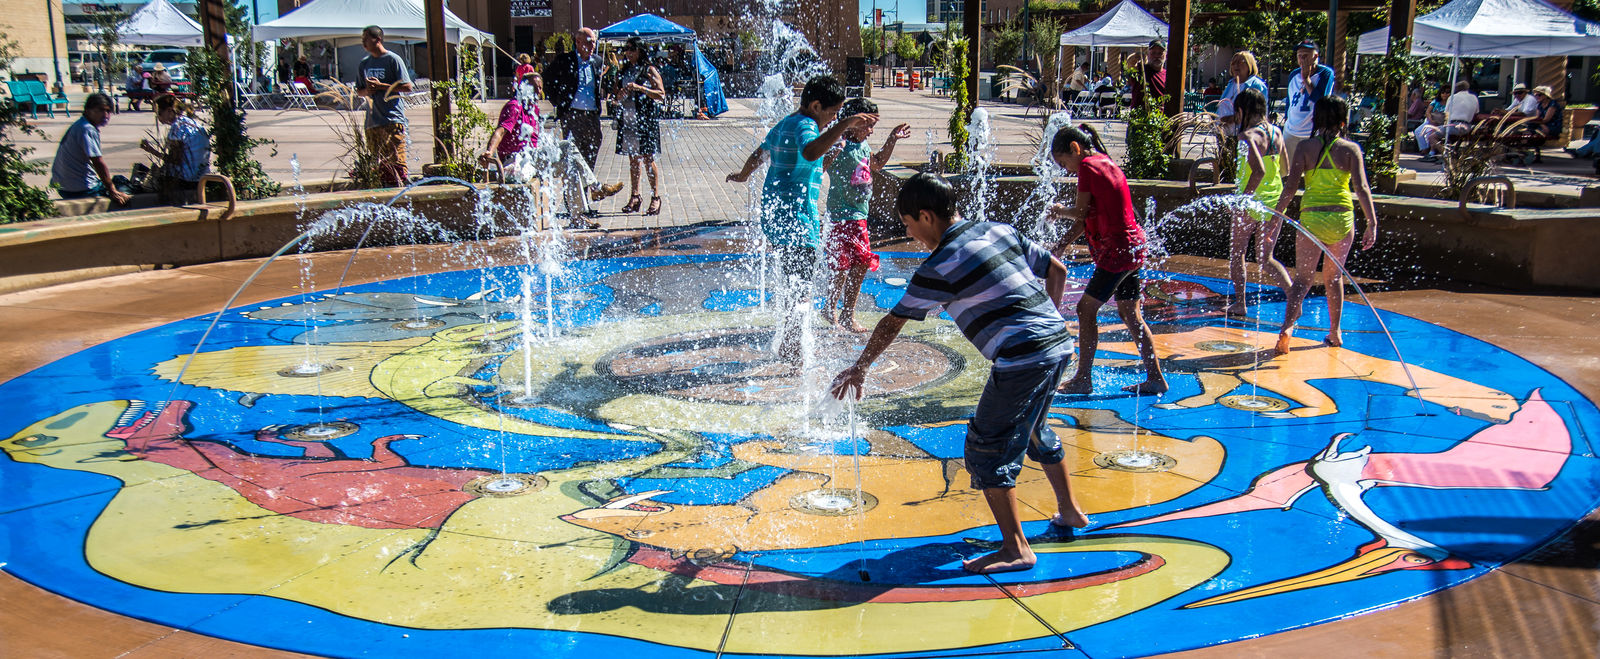 Kids play outside at a public water park in New Mexico.